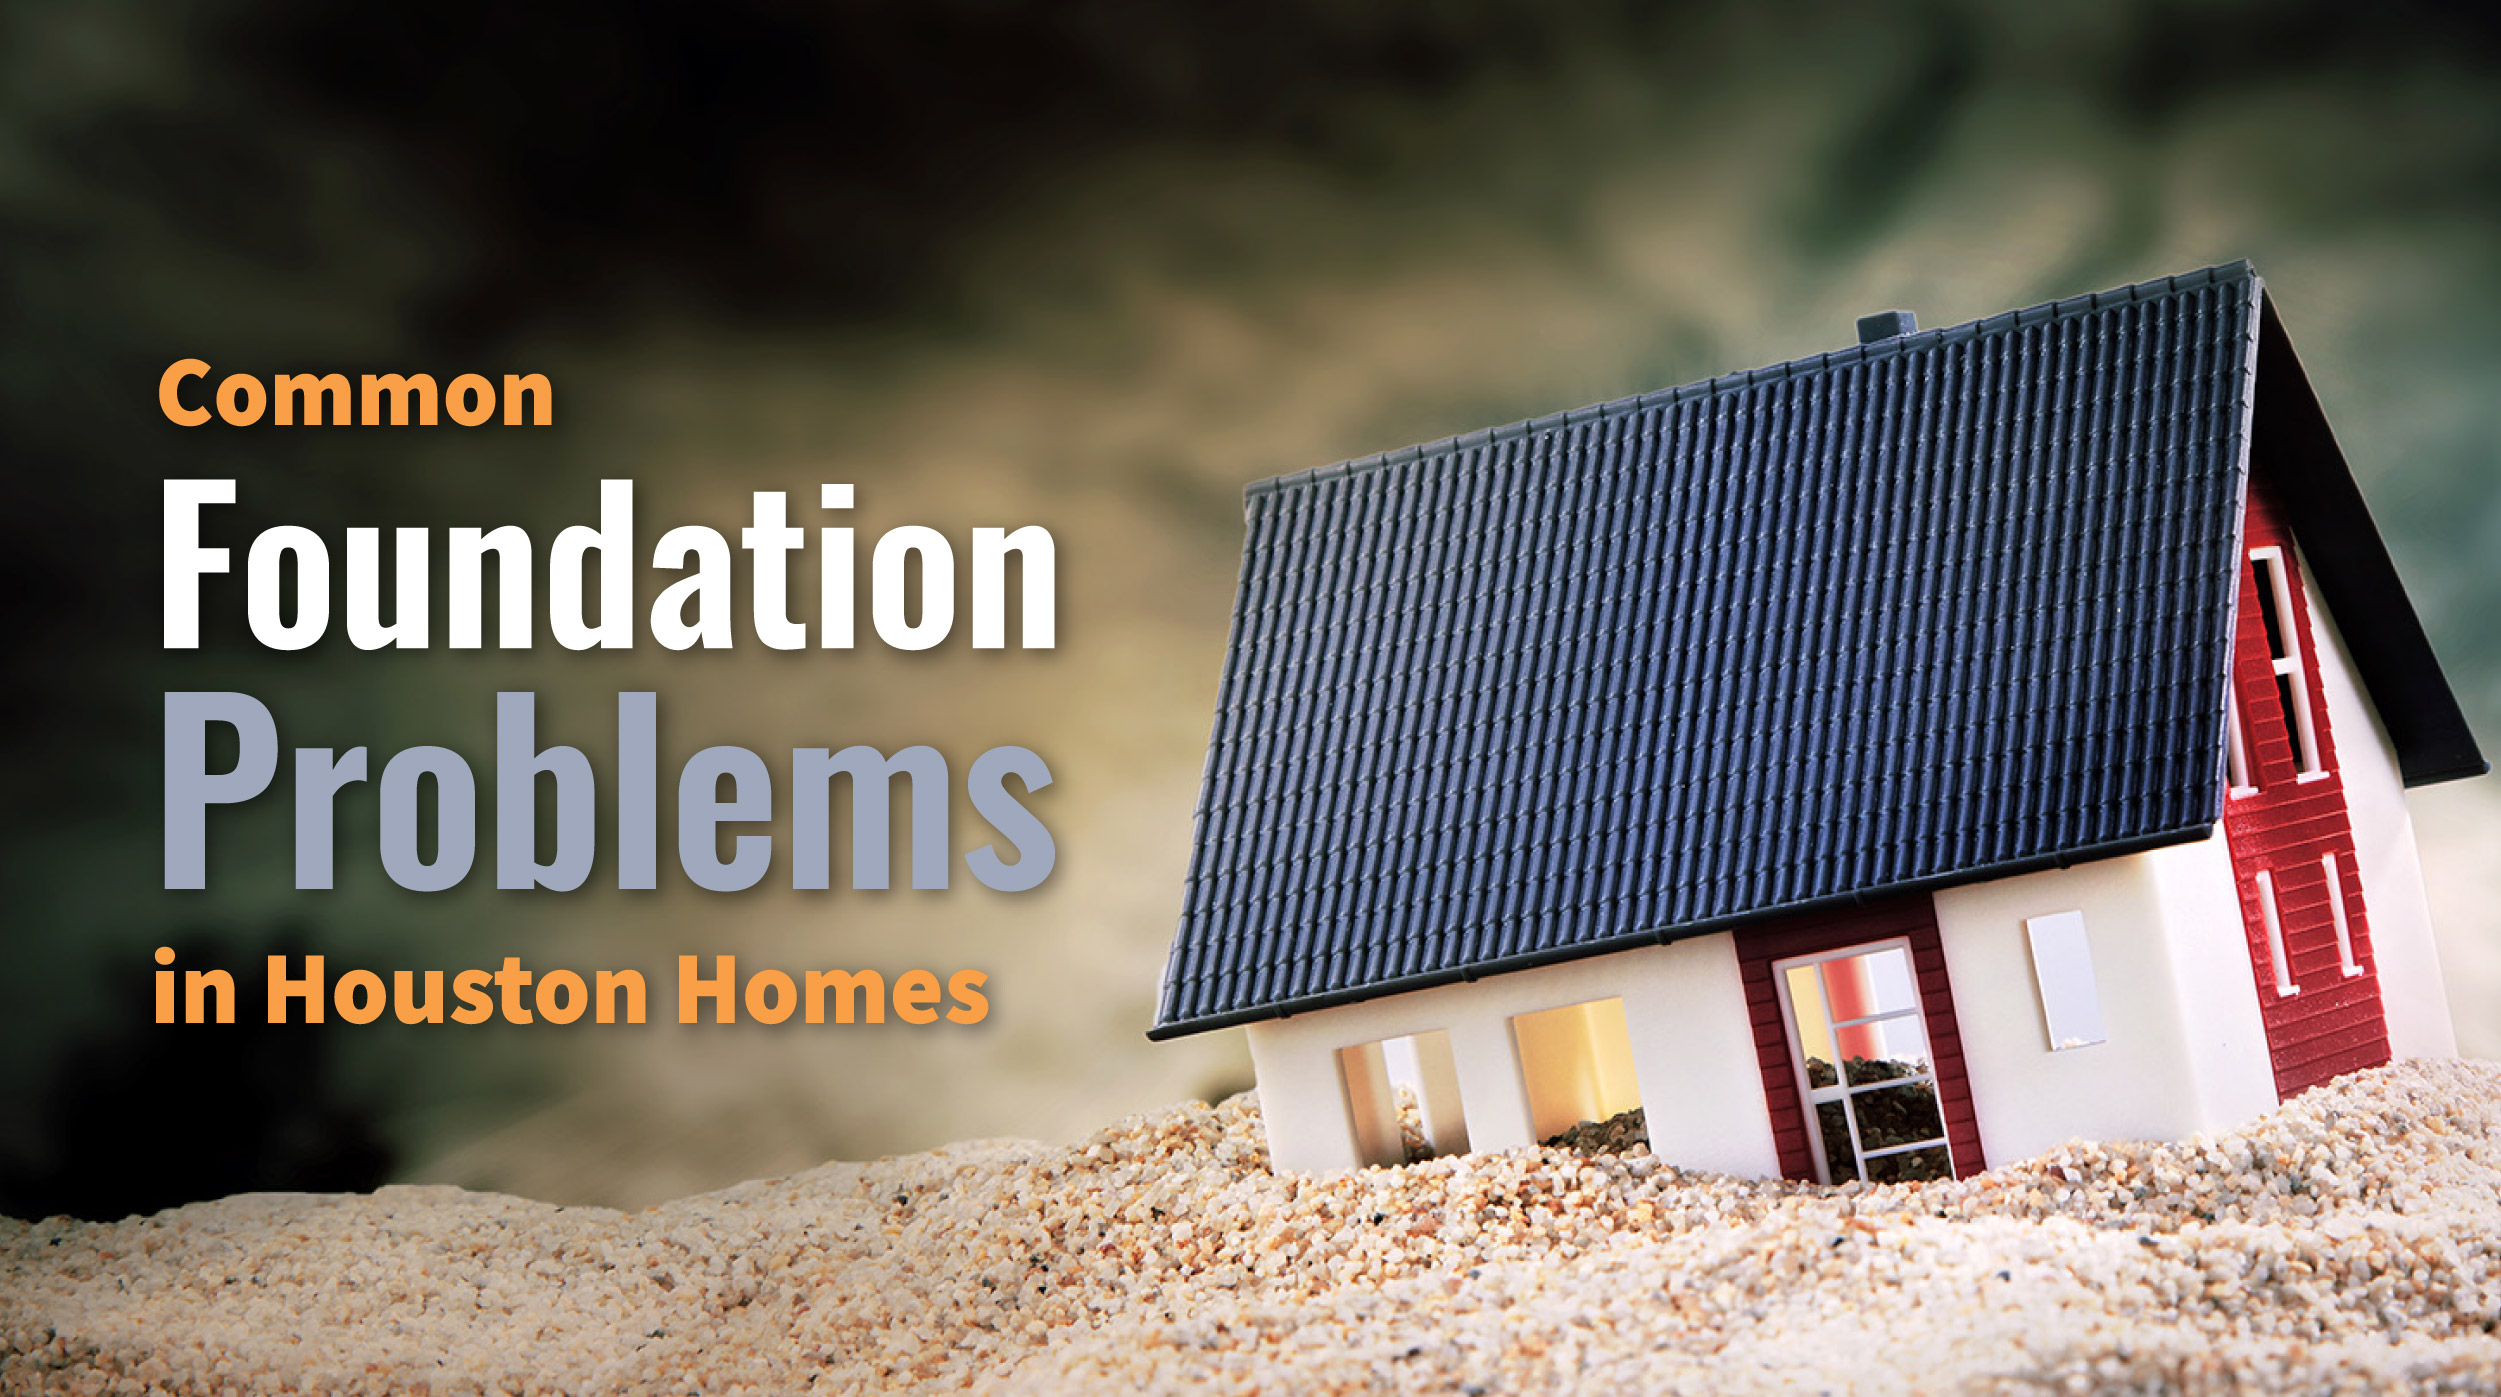 Common Foundation Problems in Houston Homes